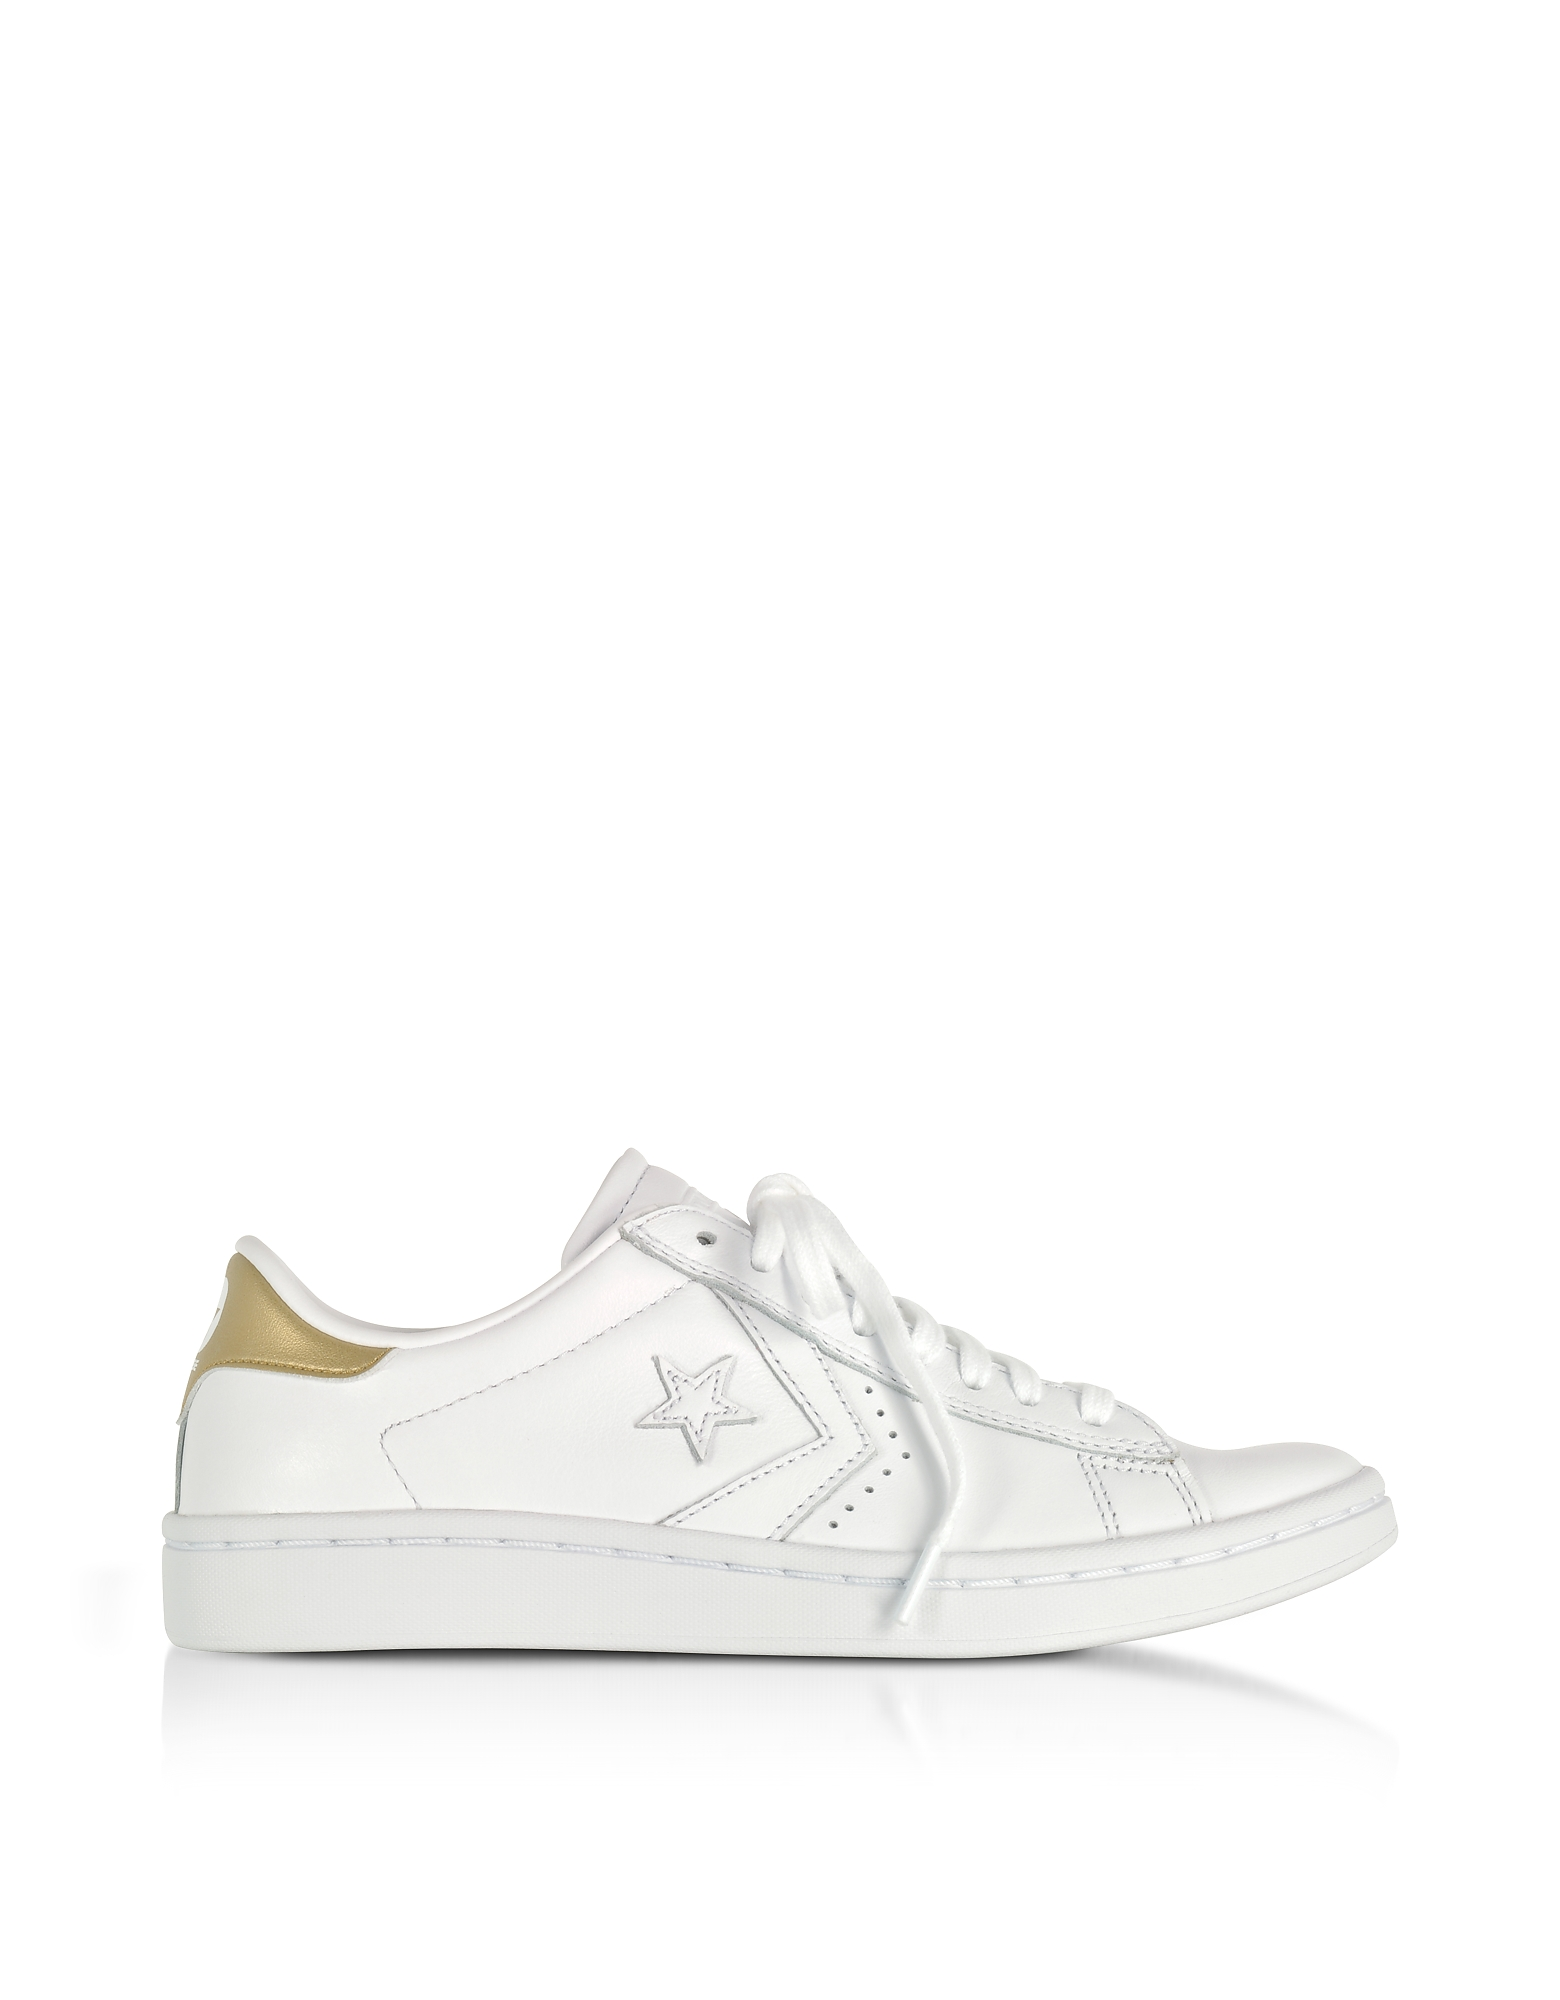 Converse Limited Edition Shoes, PL LP Ox White & Gold Leather Sneakers